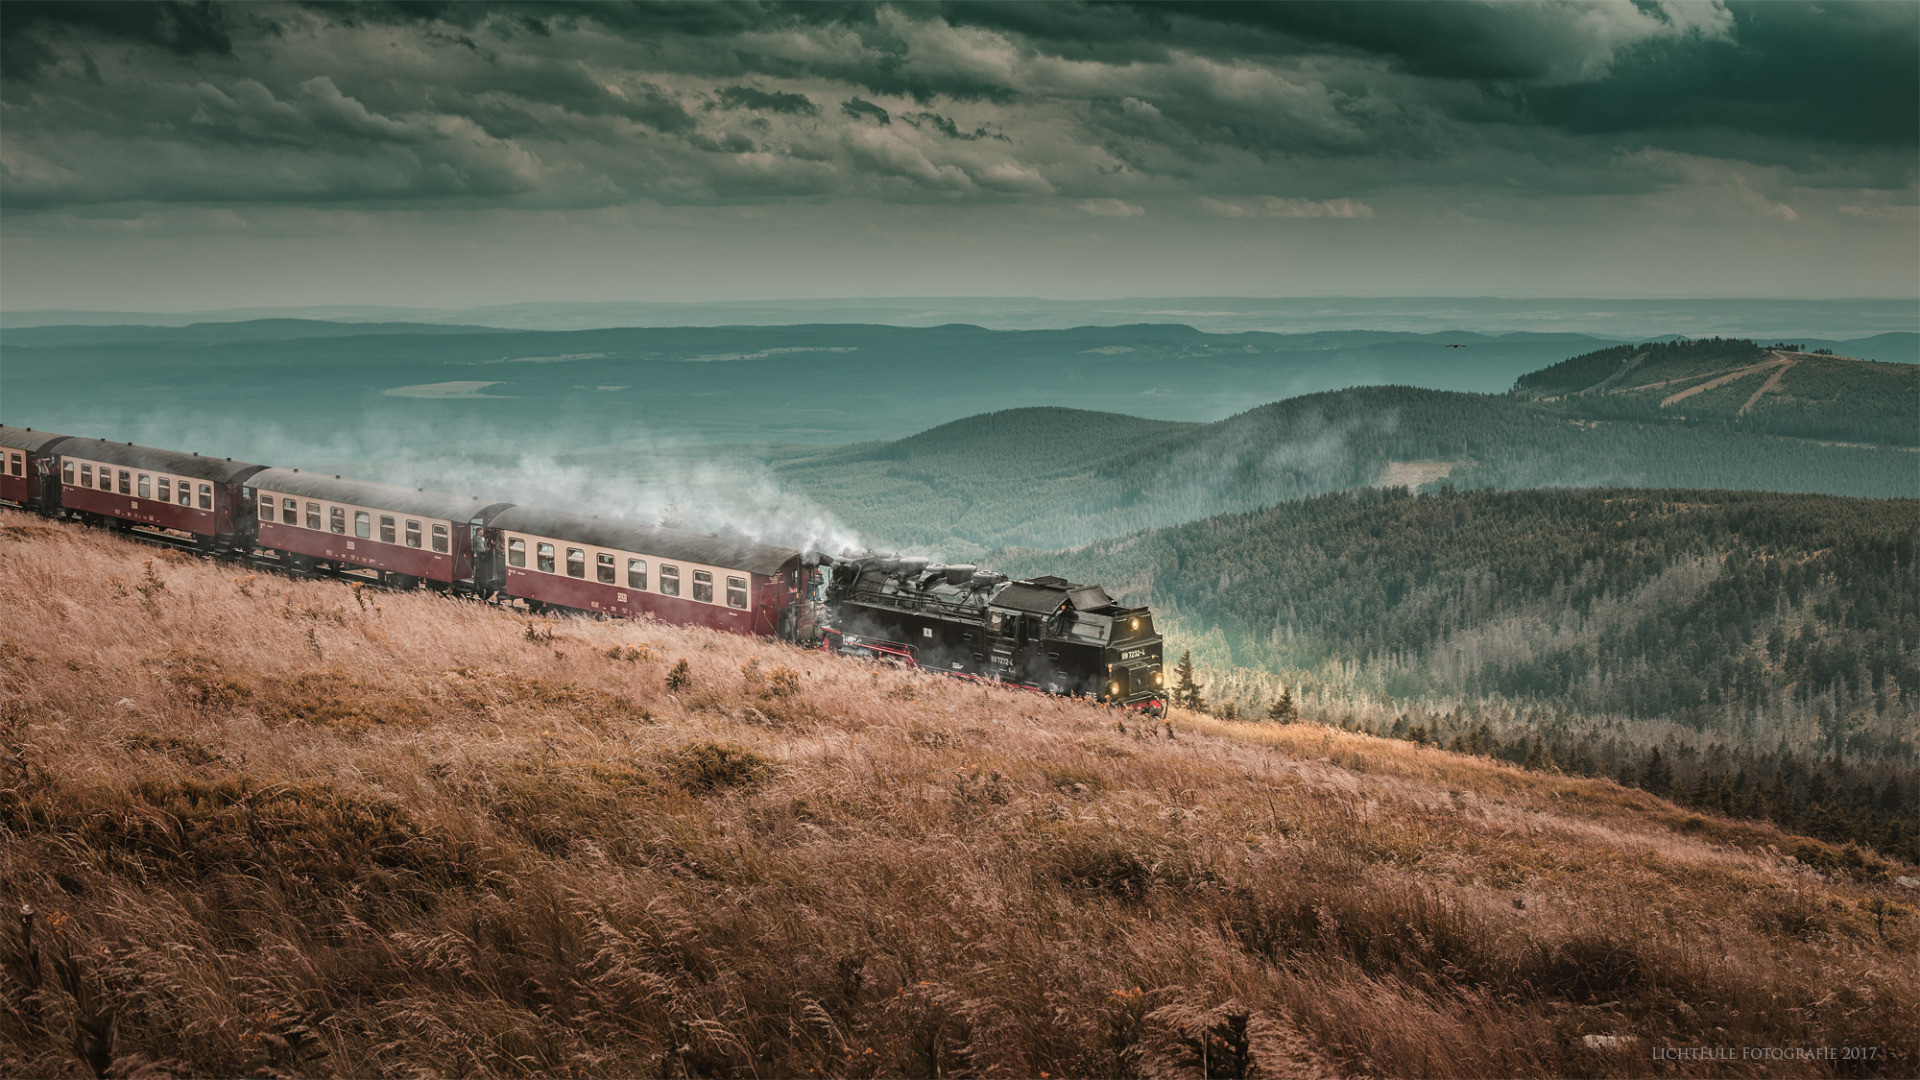 Res: 1920x1080, Hogwarts Express am Brocken::.